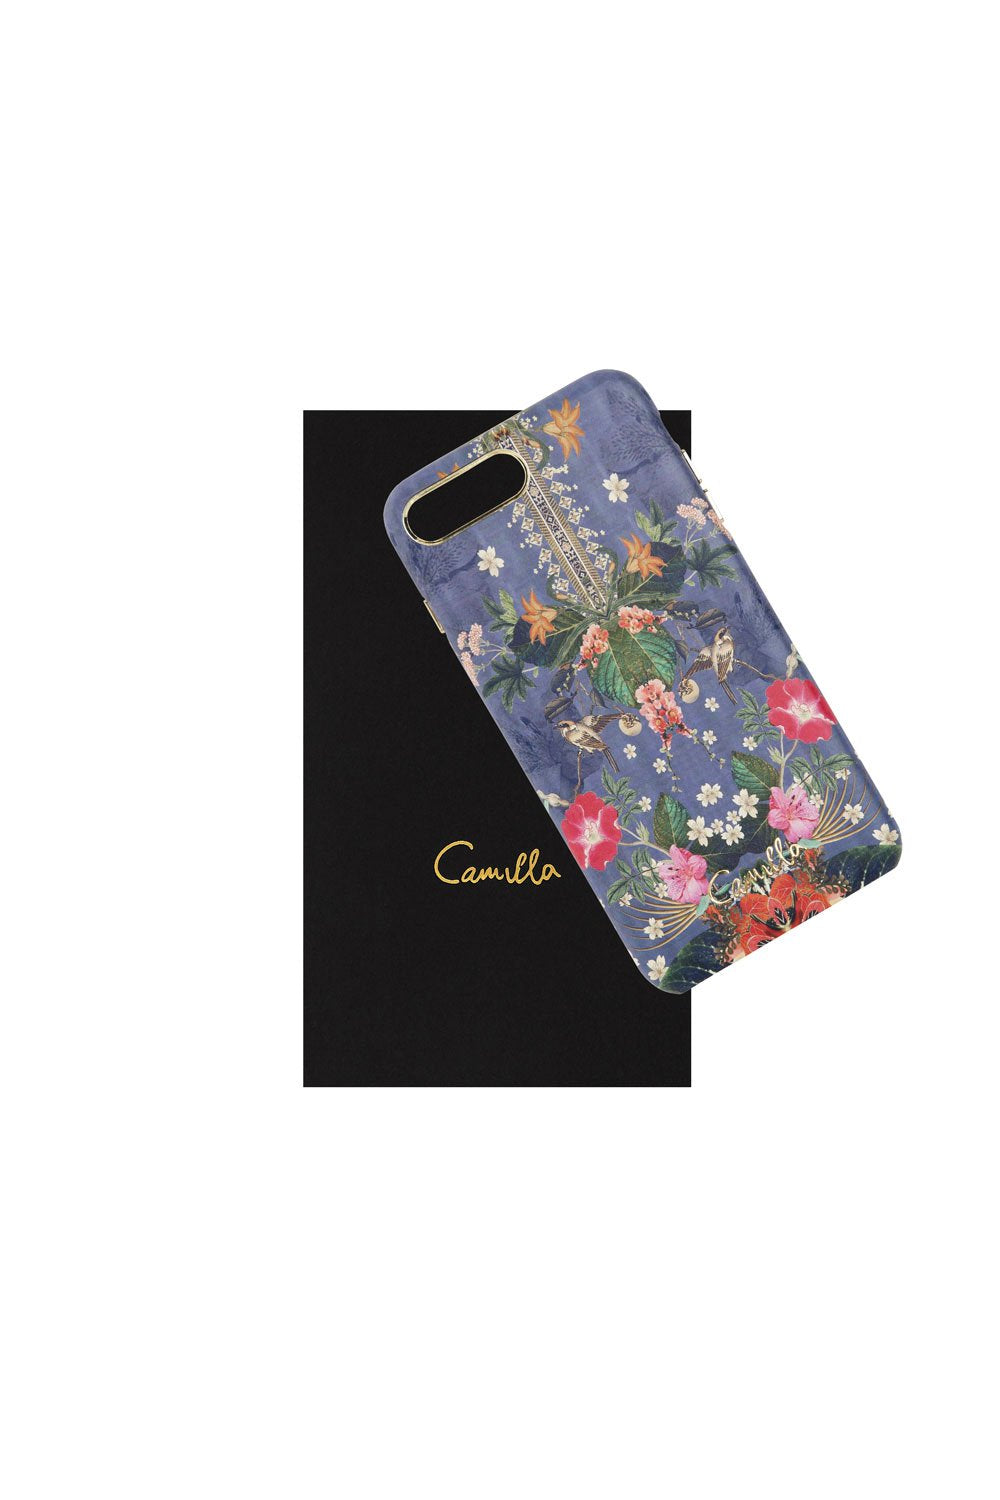 IPHONE 7 PLUS CASE FARAWAY FLORALS